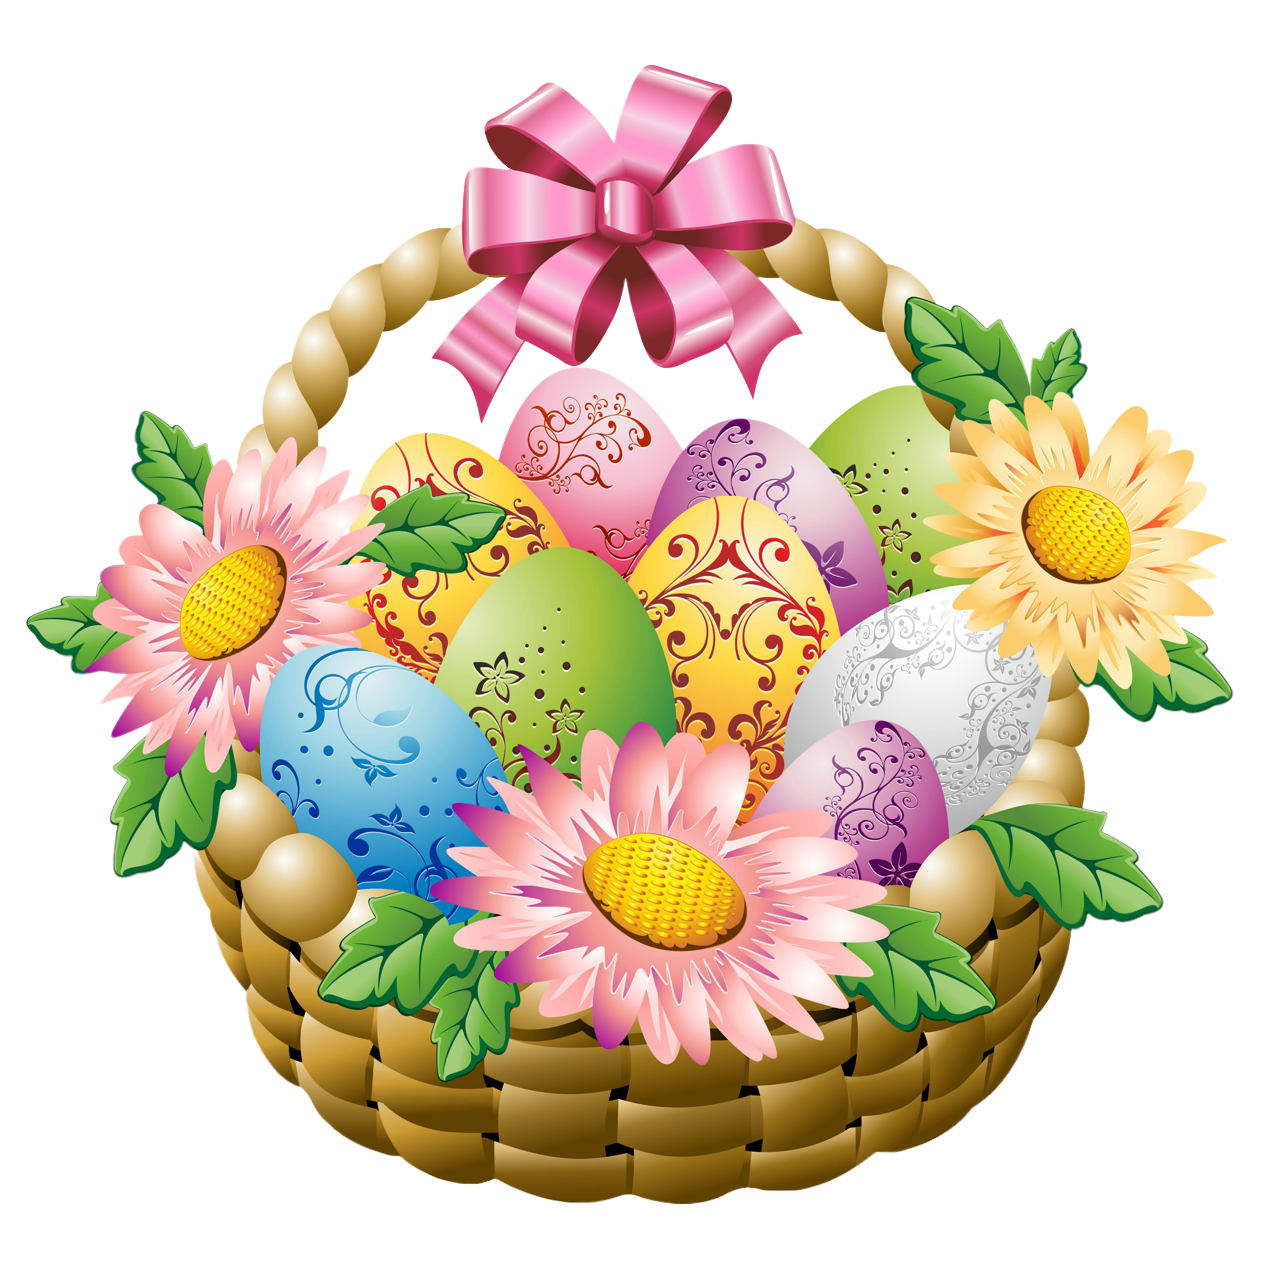 Easter flower clipart banner transparent download Easter Basket with Easter Eggs and Flowers PNG Picture banner transparent download